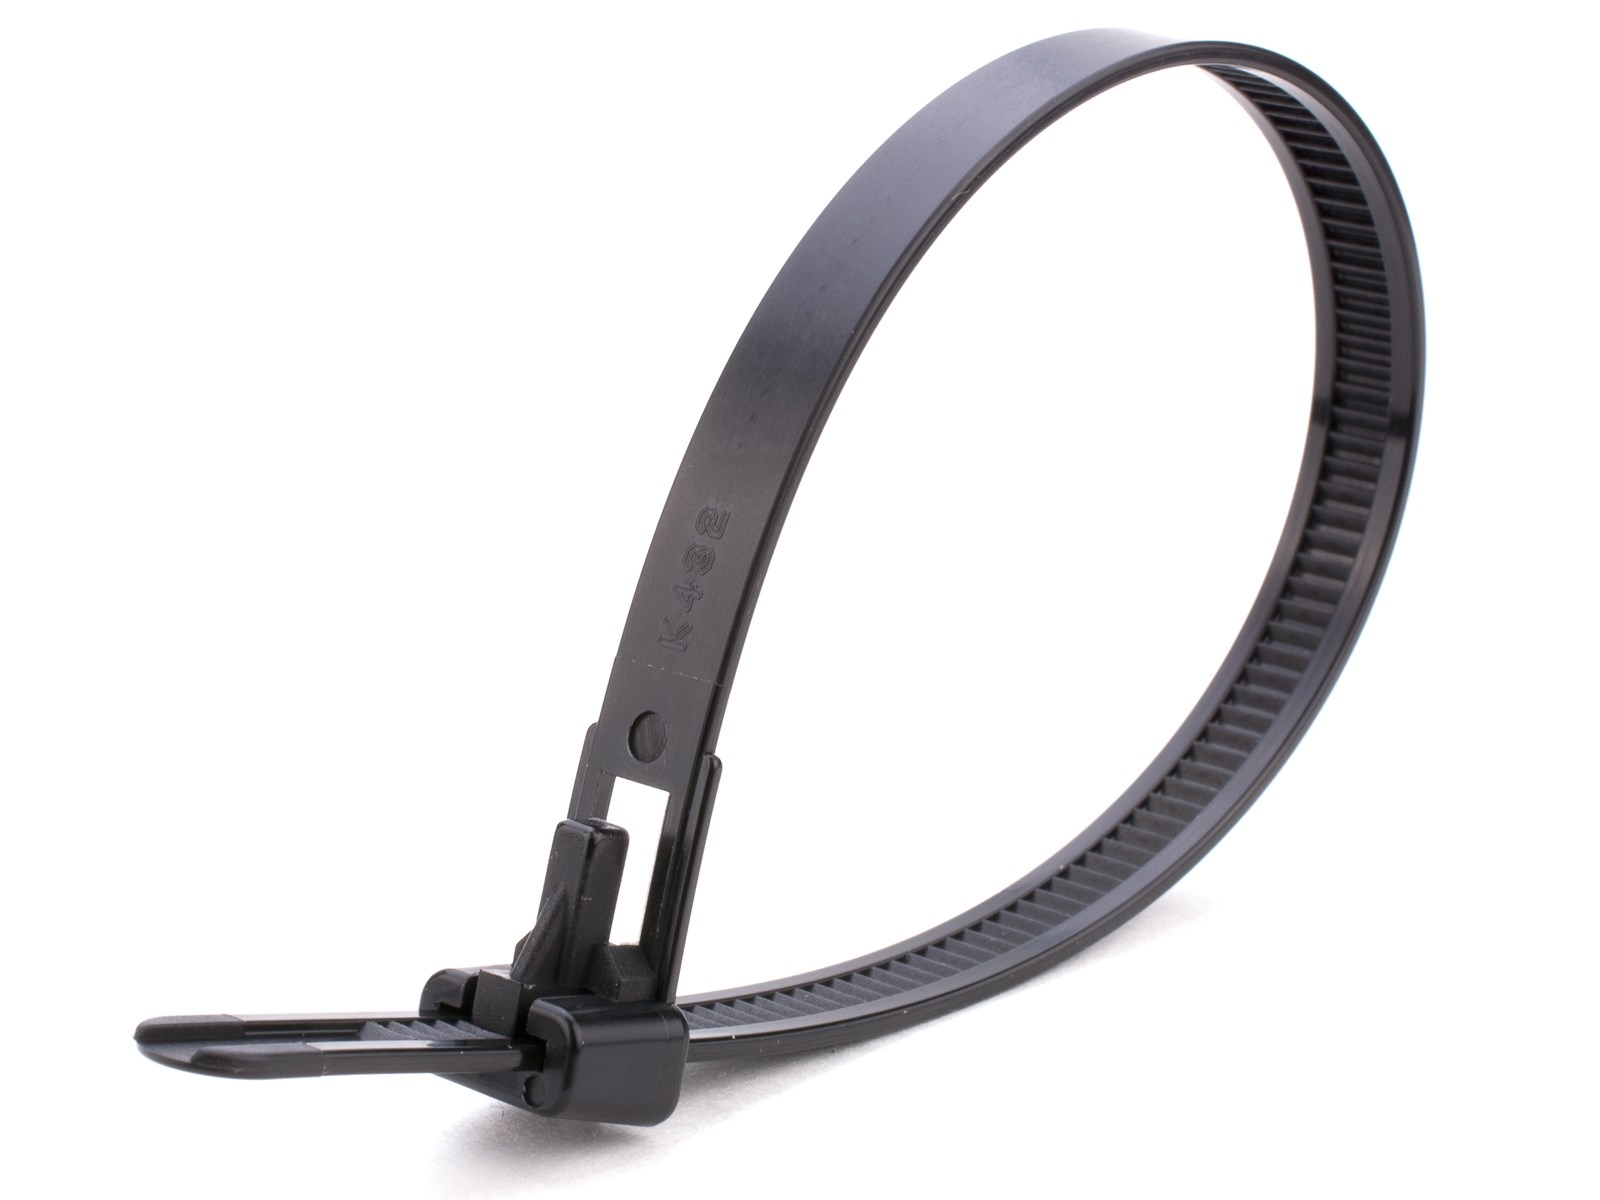 341b08bc99f2 10 Inch Black Releasable Cable Tie - 100 Pack - Secure™ Cable Ties